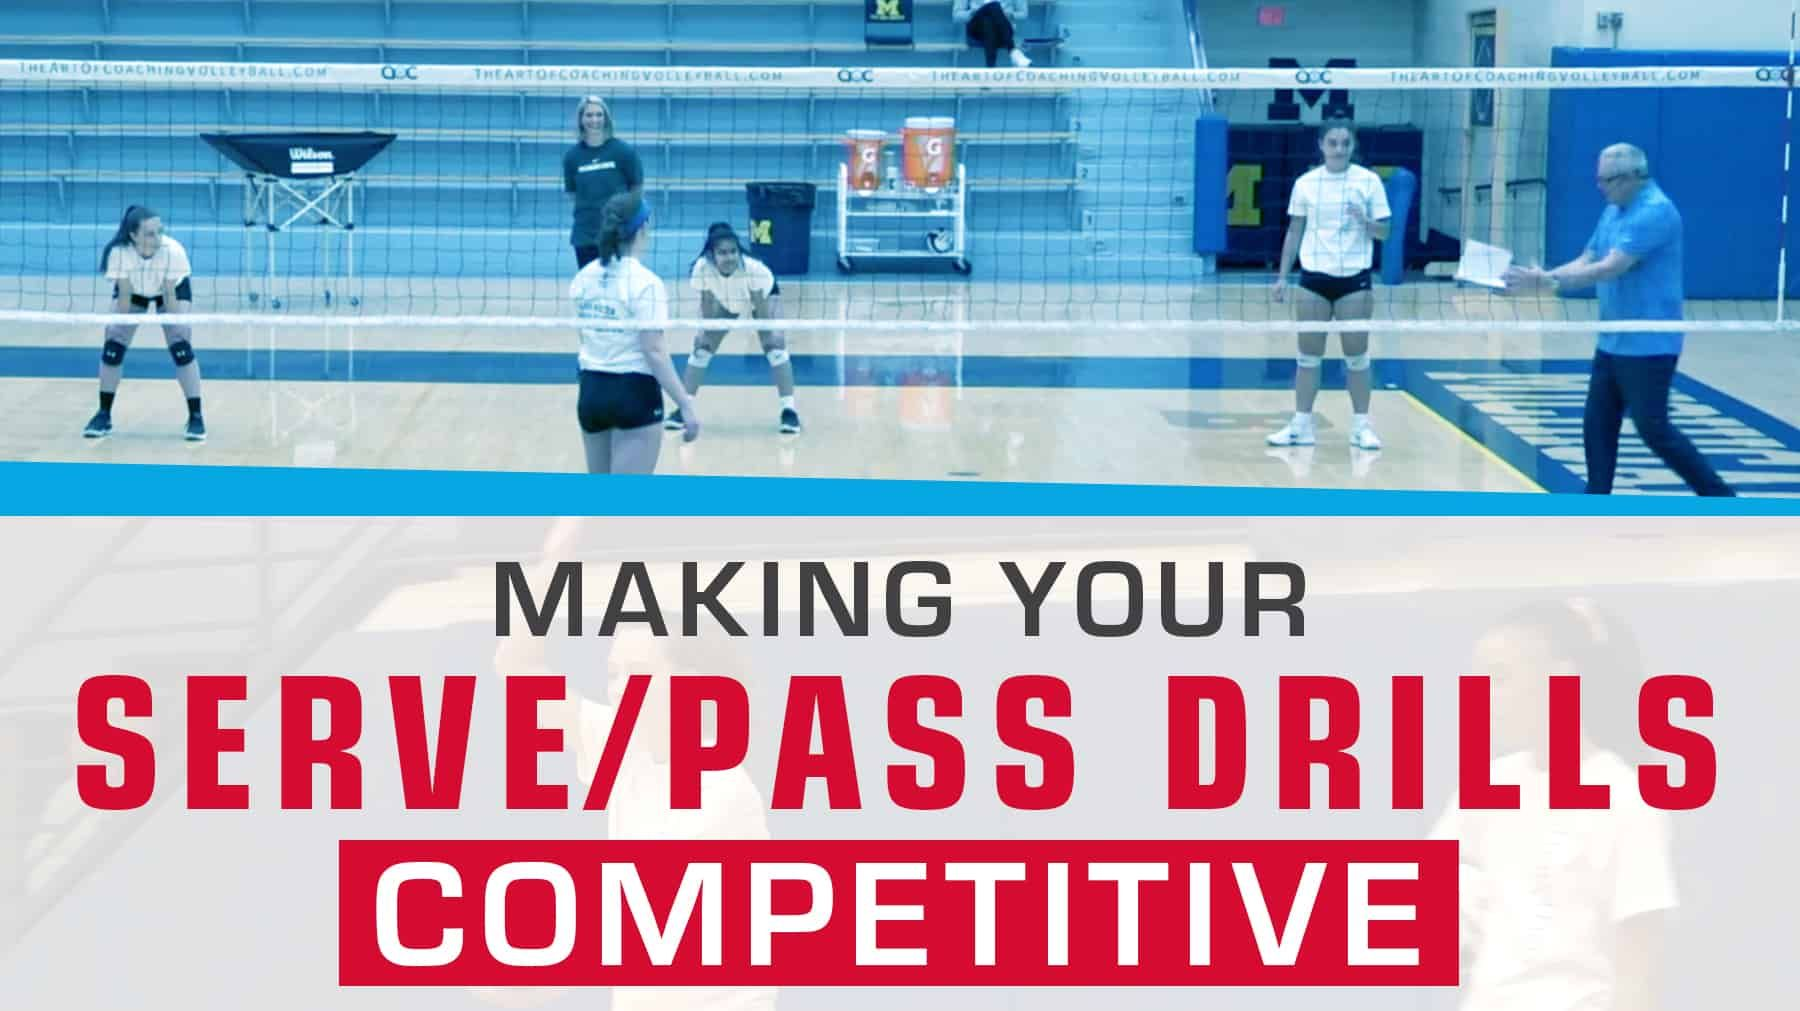 Making Your Serve Pass Drills Competitive In 2020 Coaching Volleyball Volleyball Training Volleyball Skills